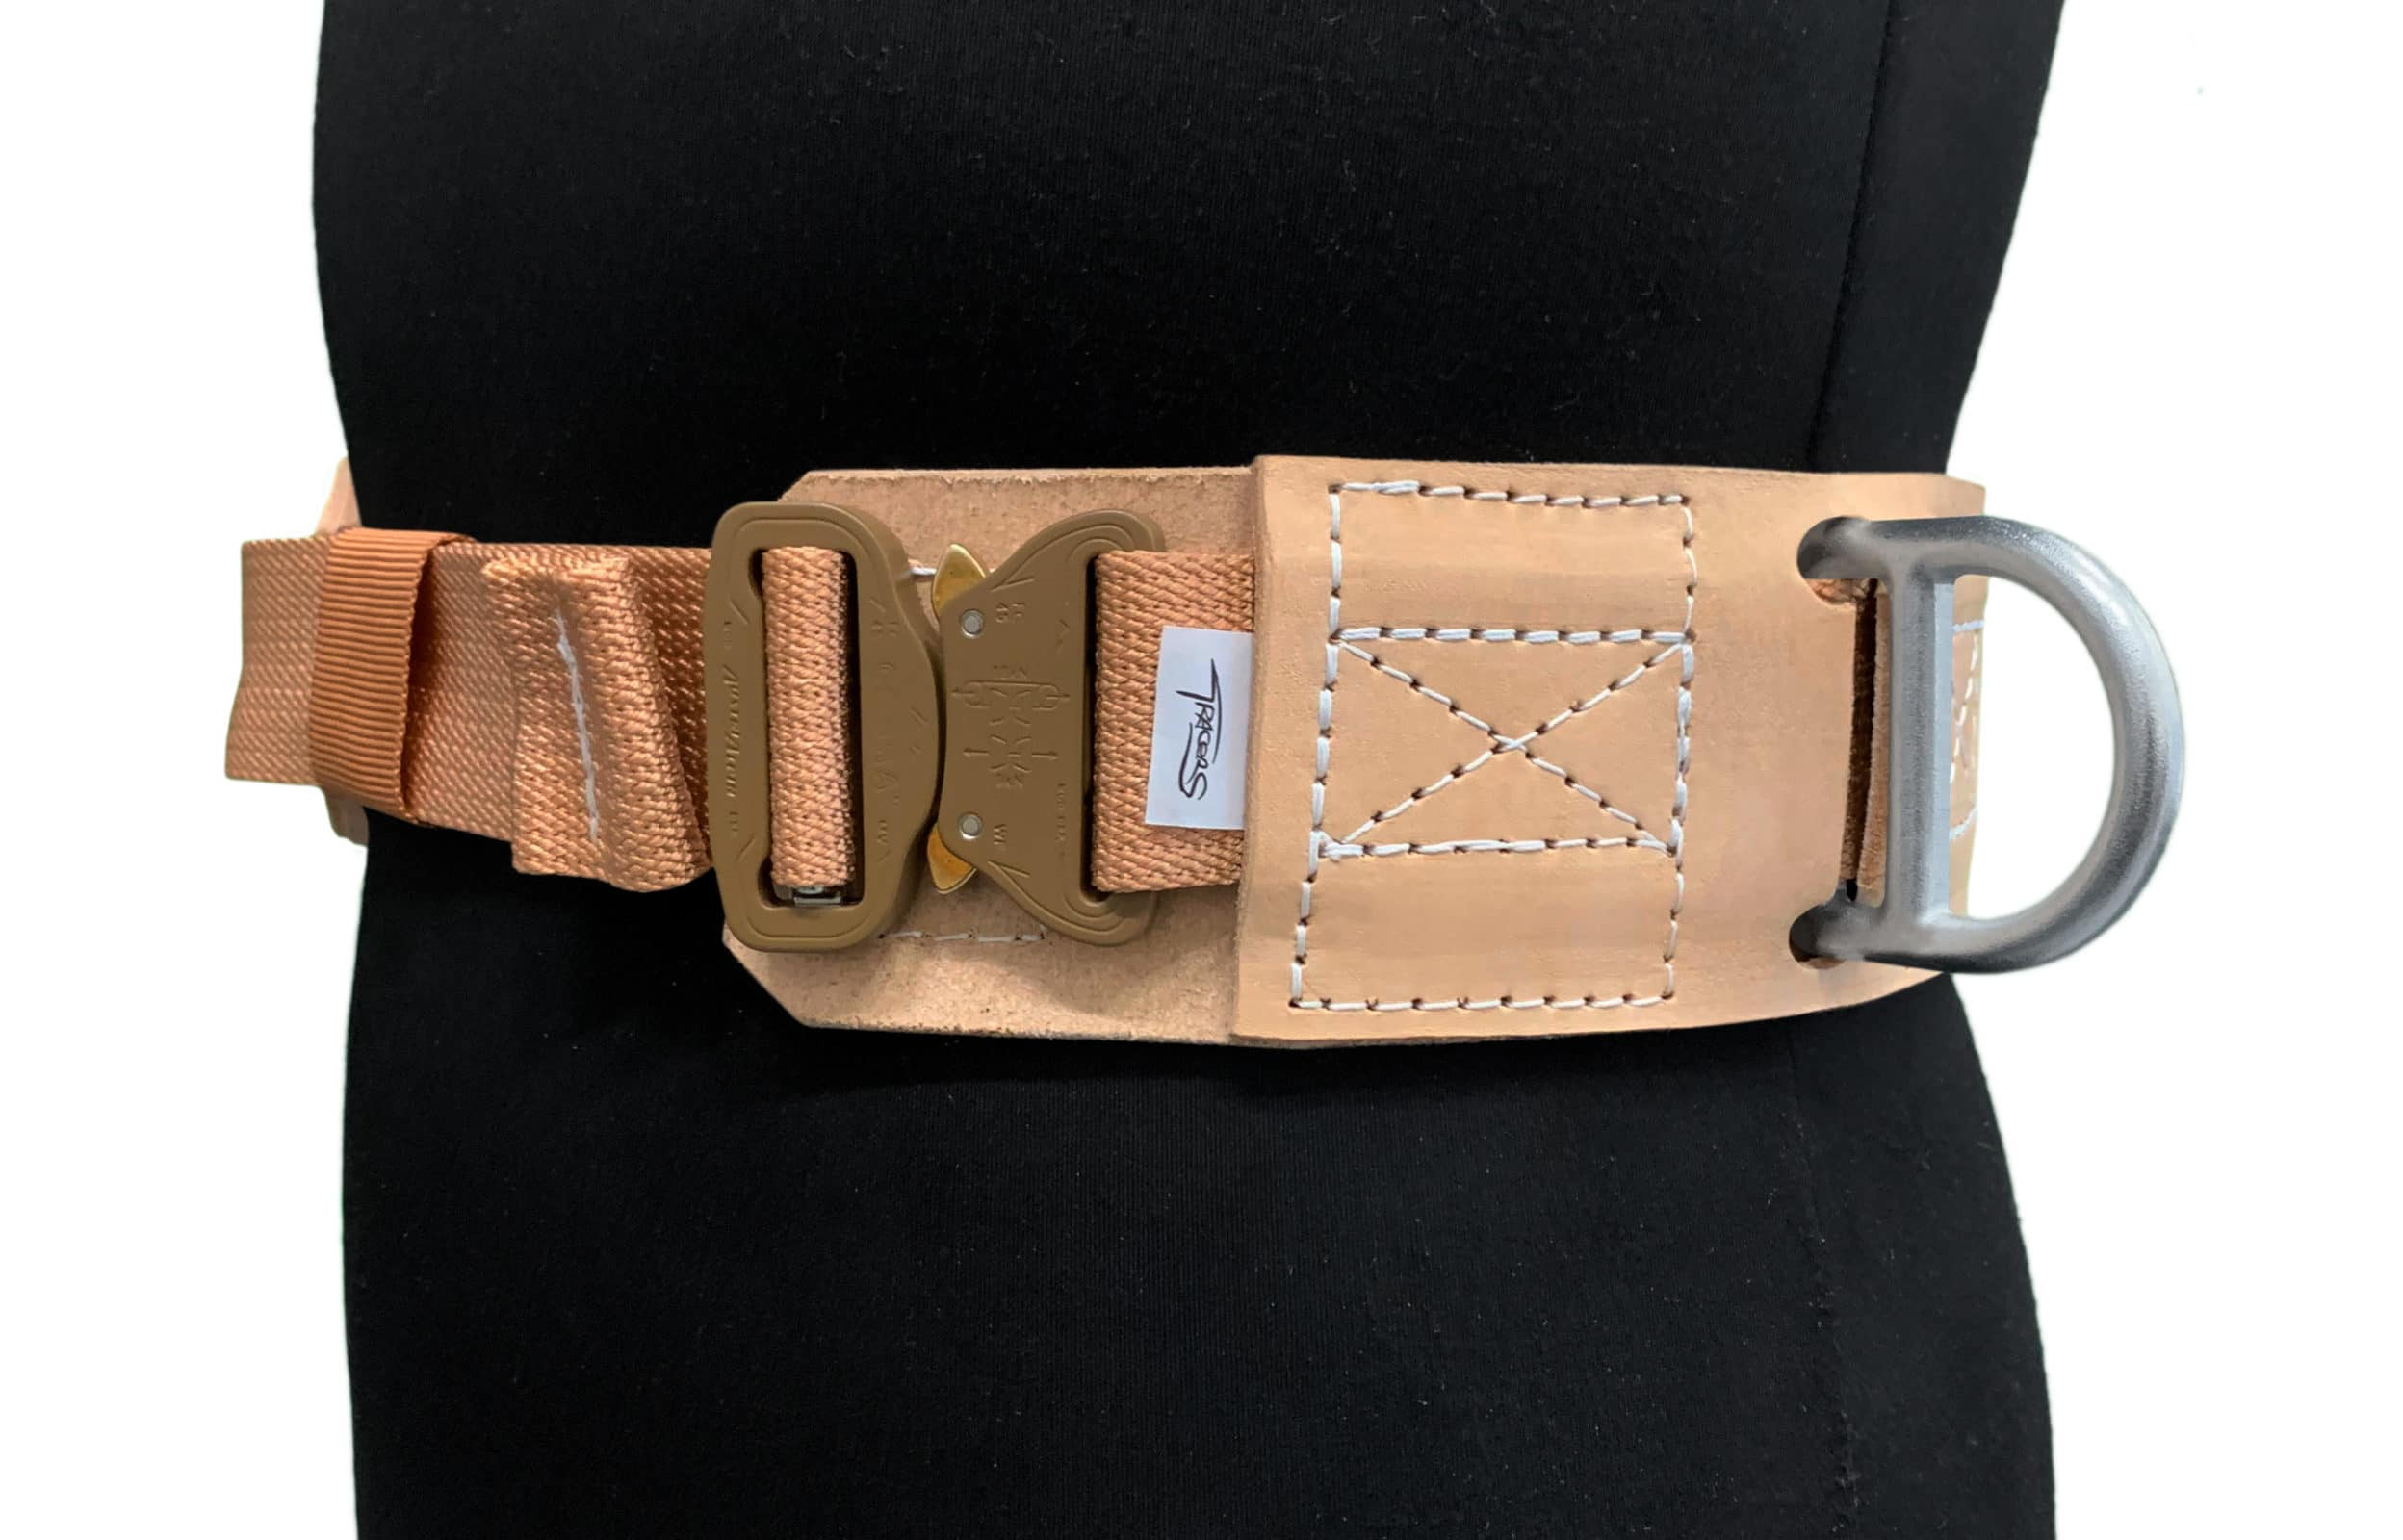 Safety belt, waist harness, preventing from fall, quick release Cobra buckle